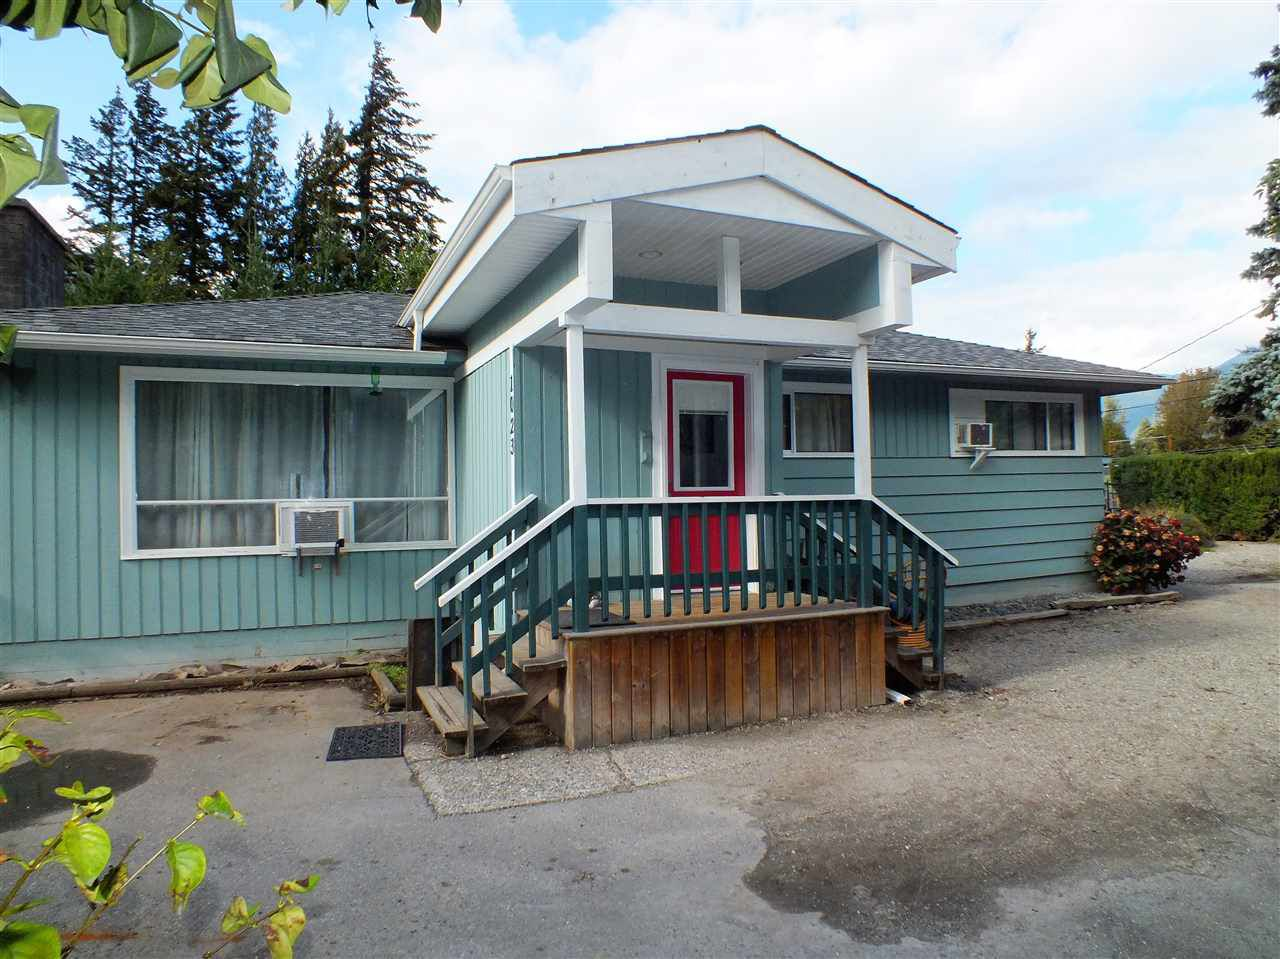 Main Photo: 1023 3RD Avenue in Hope: Hope Center House for sale : MLS®# R2305188